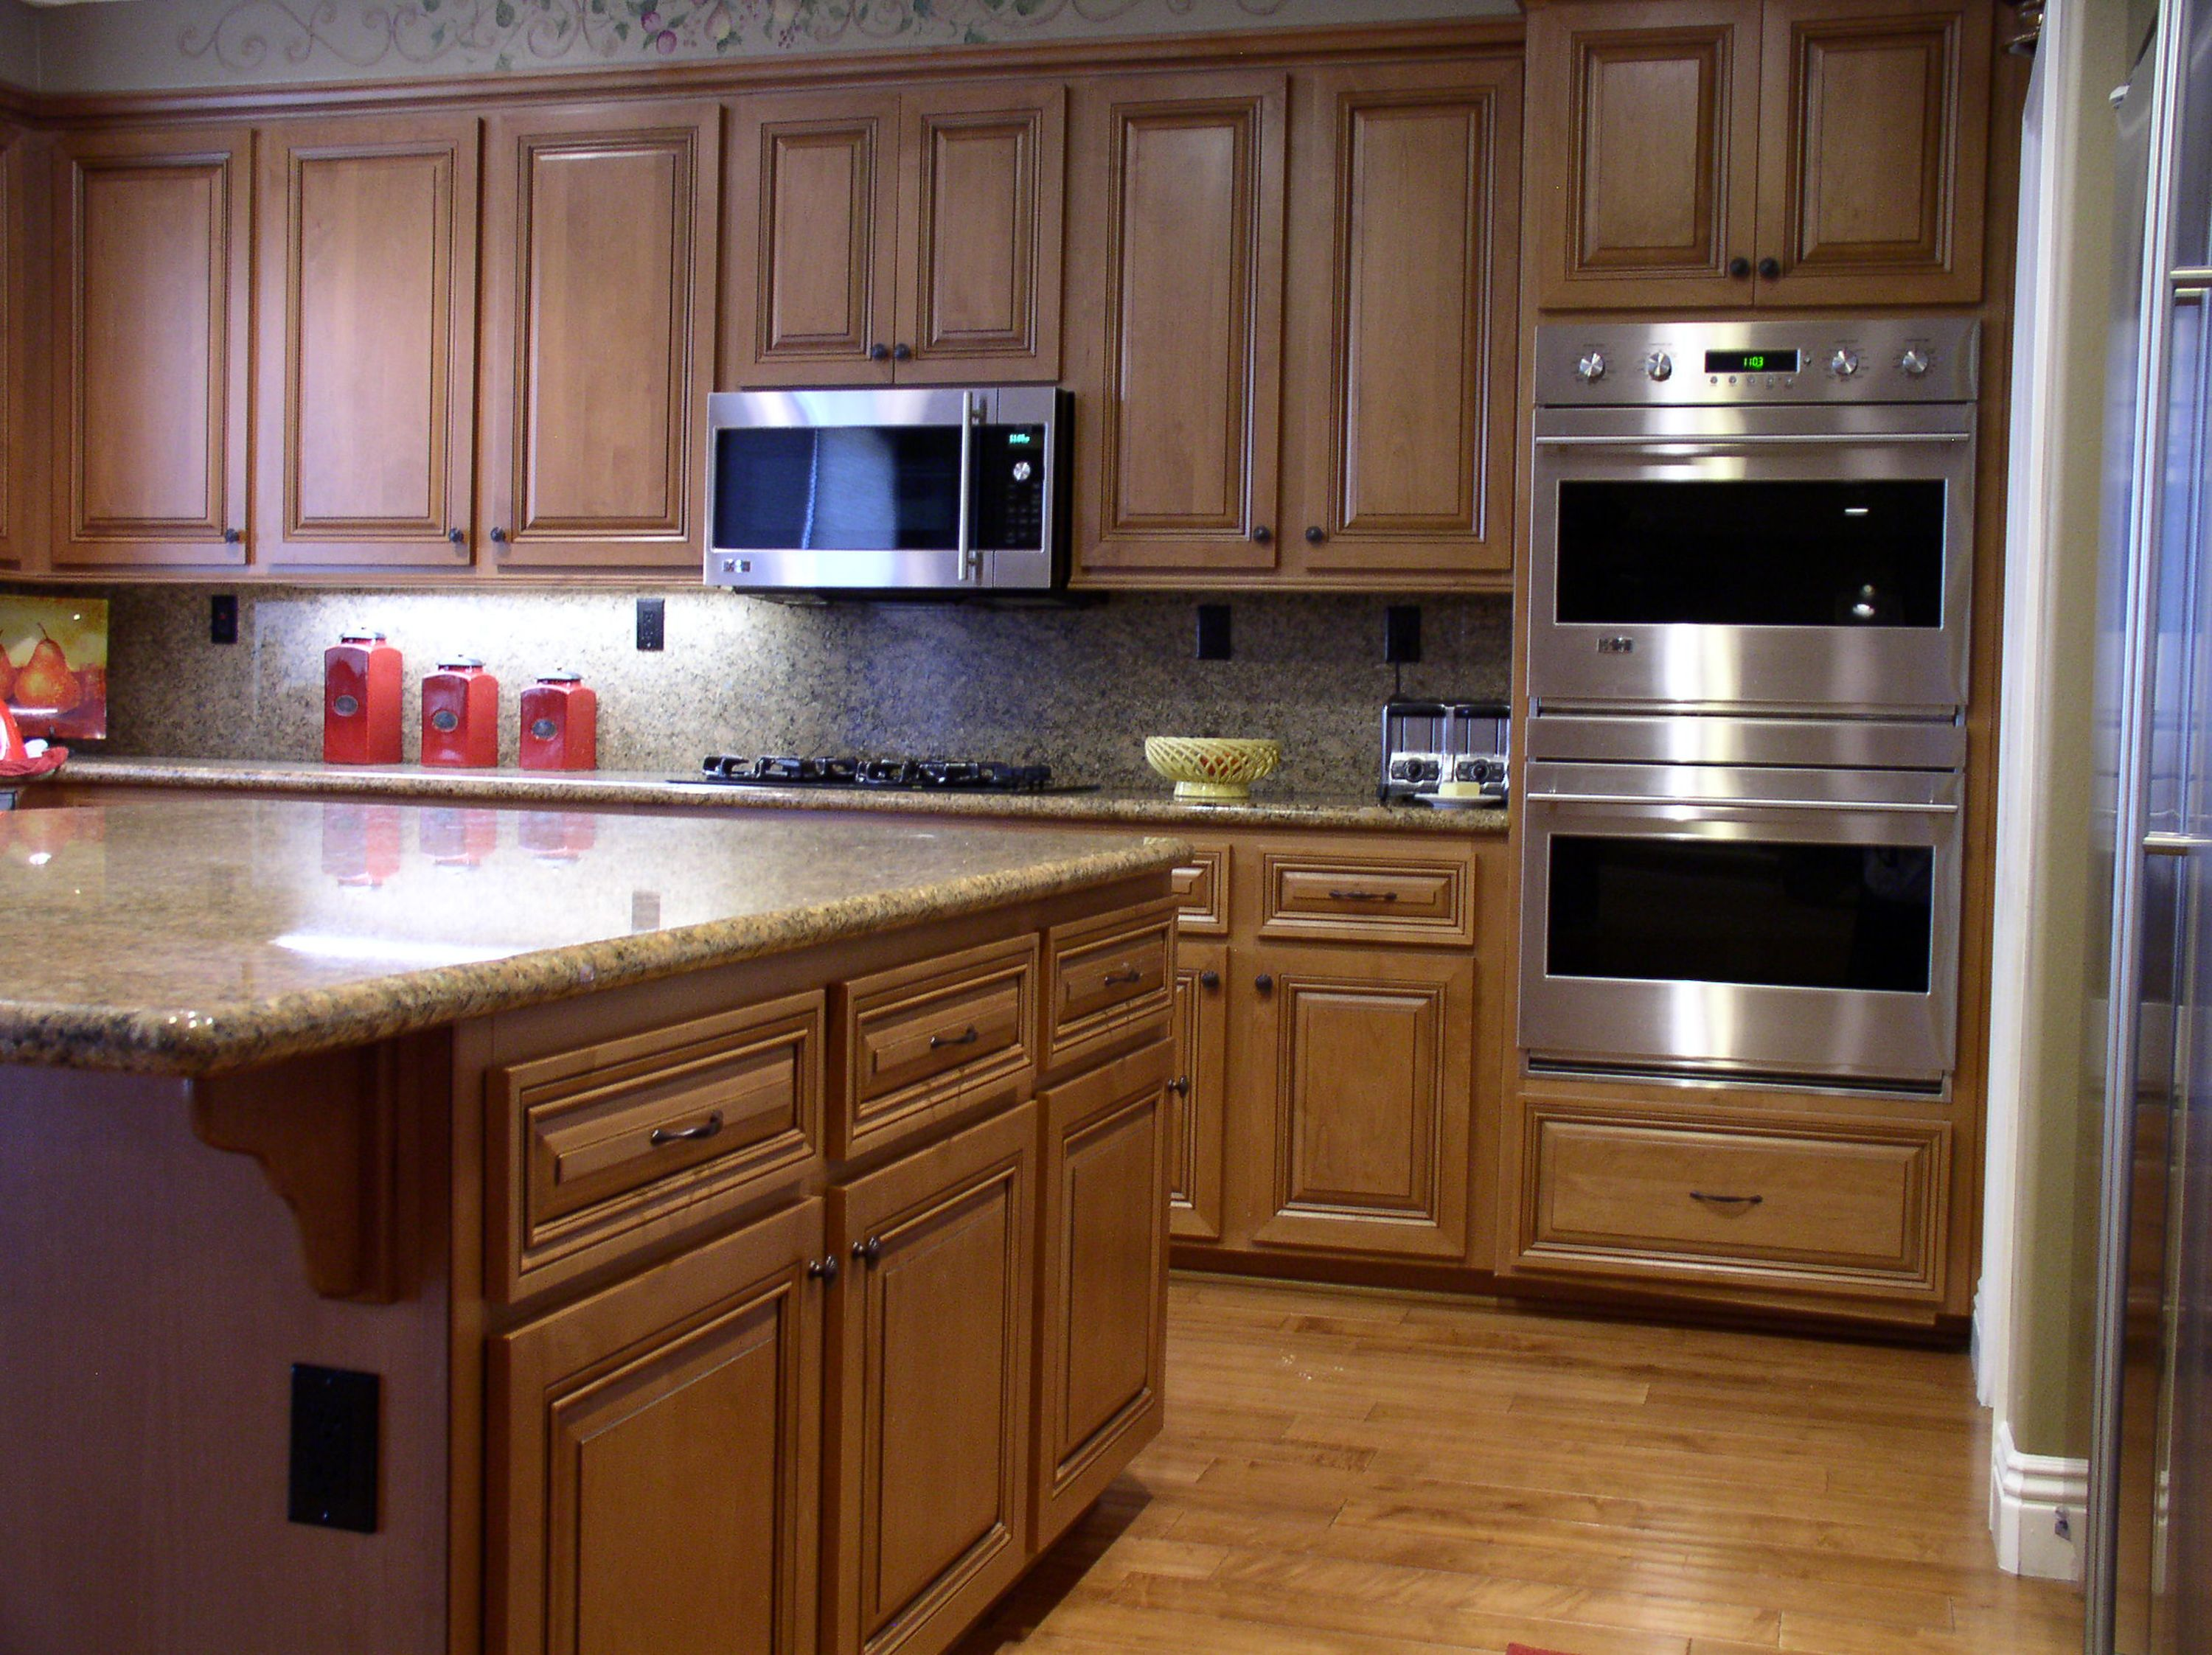 Laguna Niguel Kitchen Cabinets Cabinet Refacing Kitchen Remodel Kitchen Cabinets